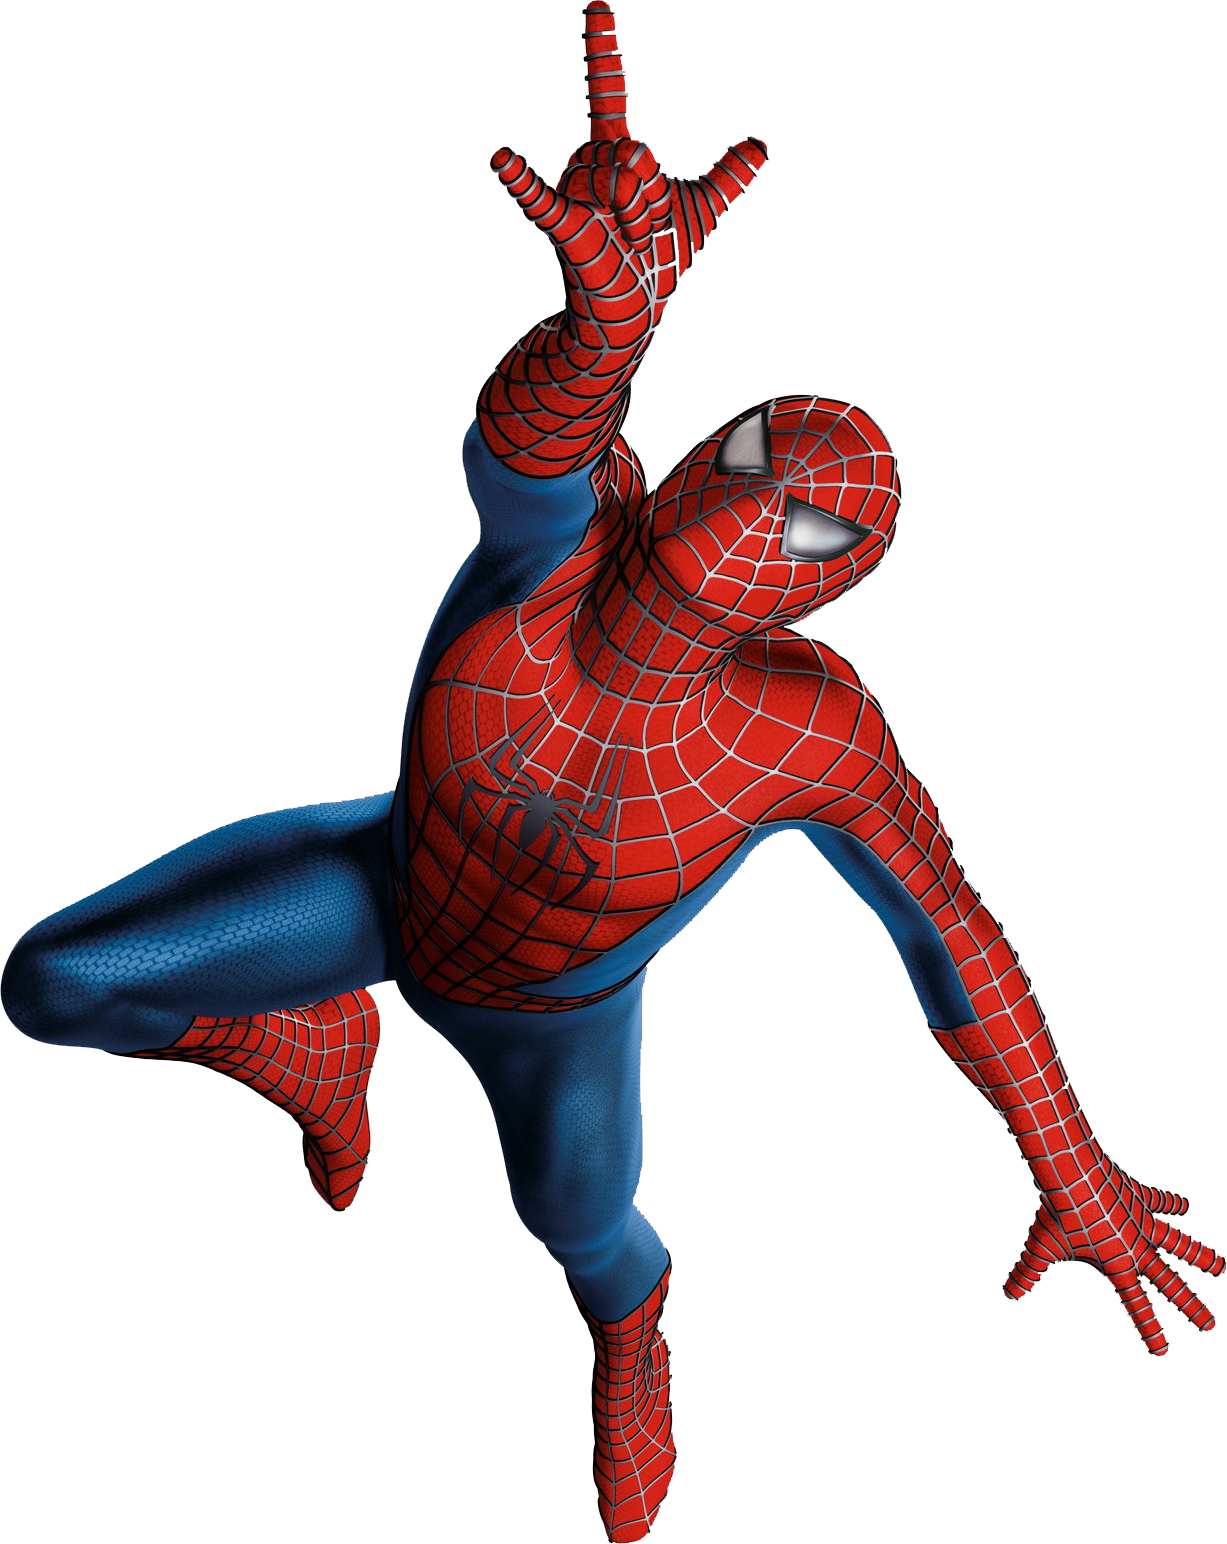 Youtube clipart spiderman. Png image purepng free